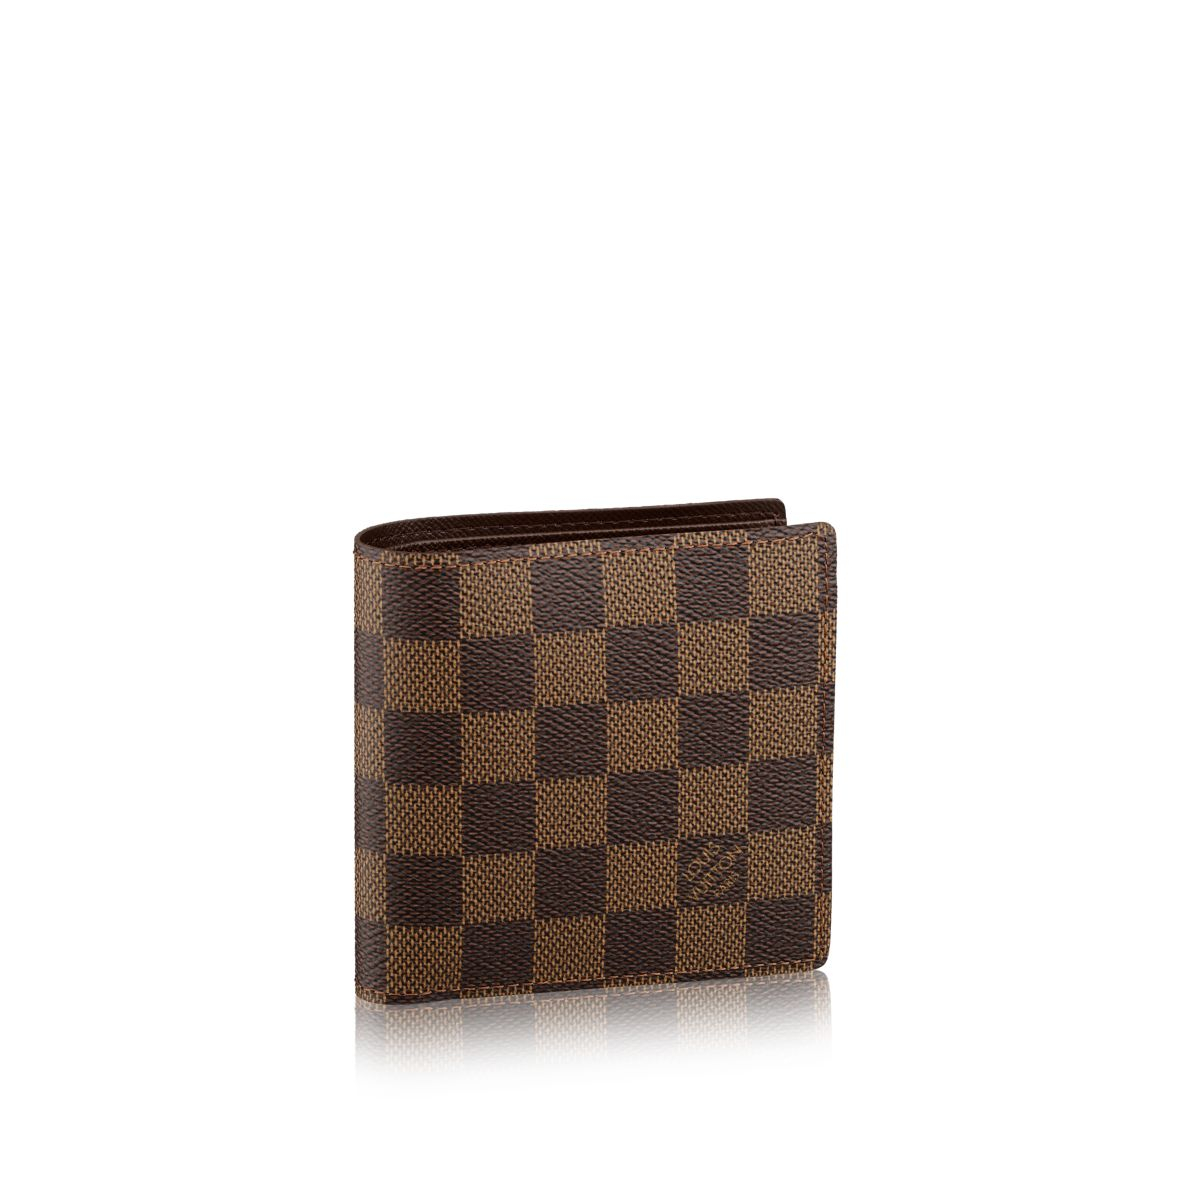 Louis Vuitton Marco Wallet In Brown For Men Damier